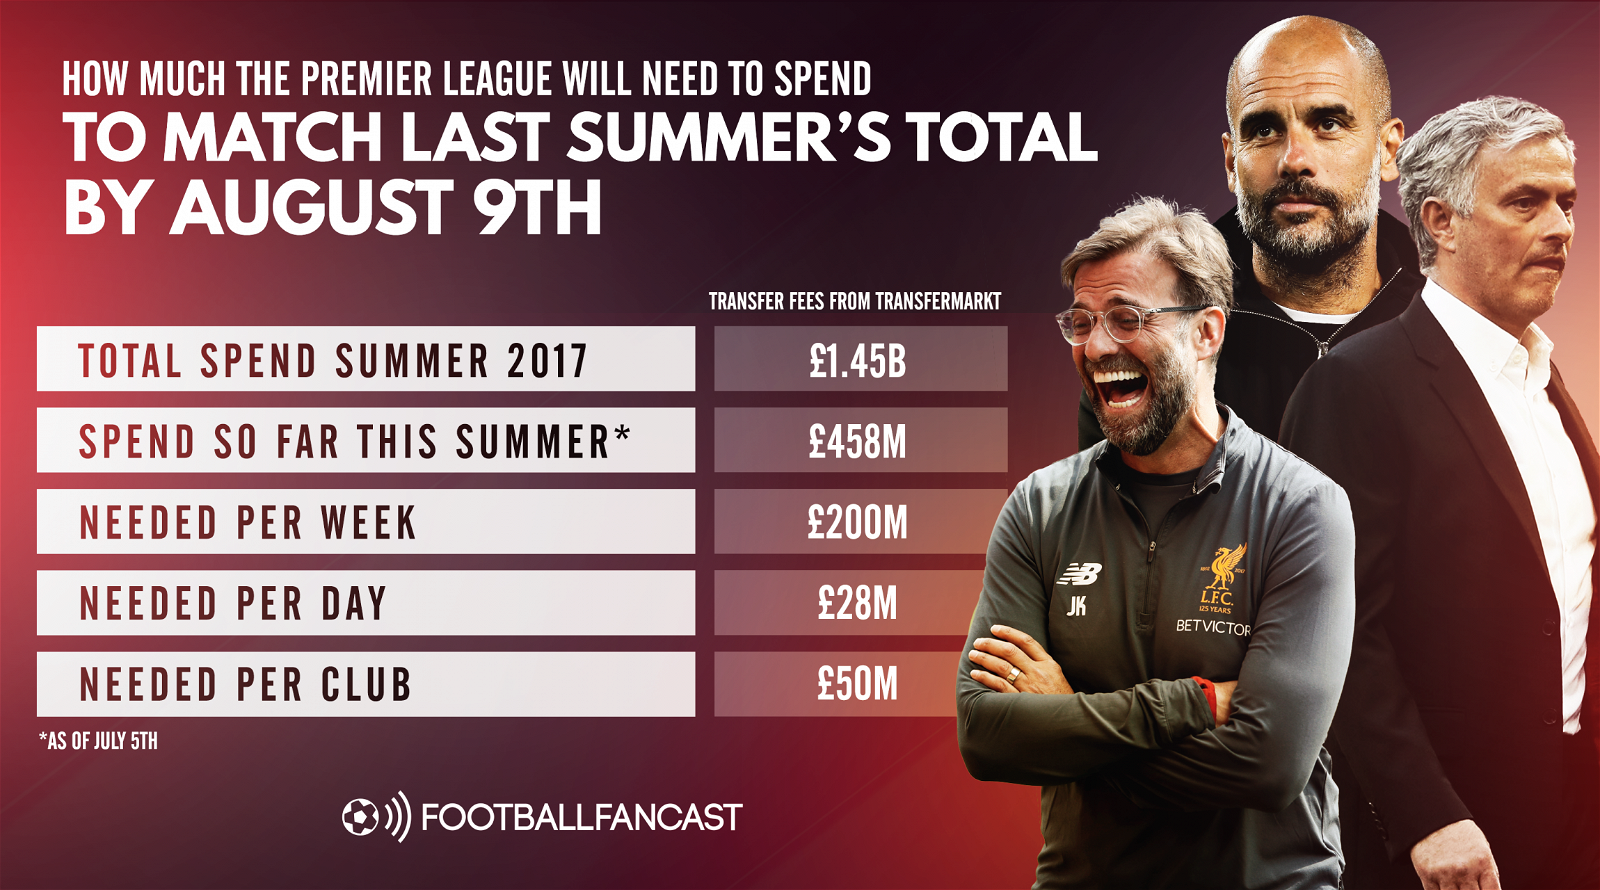 How much the Premier League would need to spend by August 9th